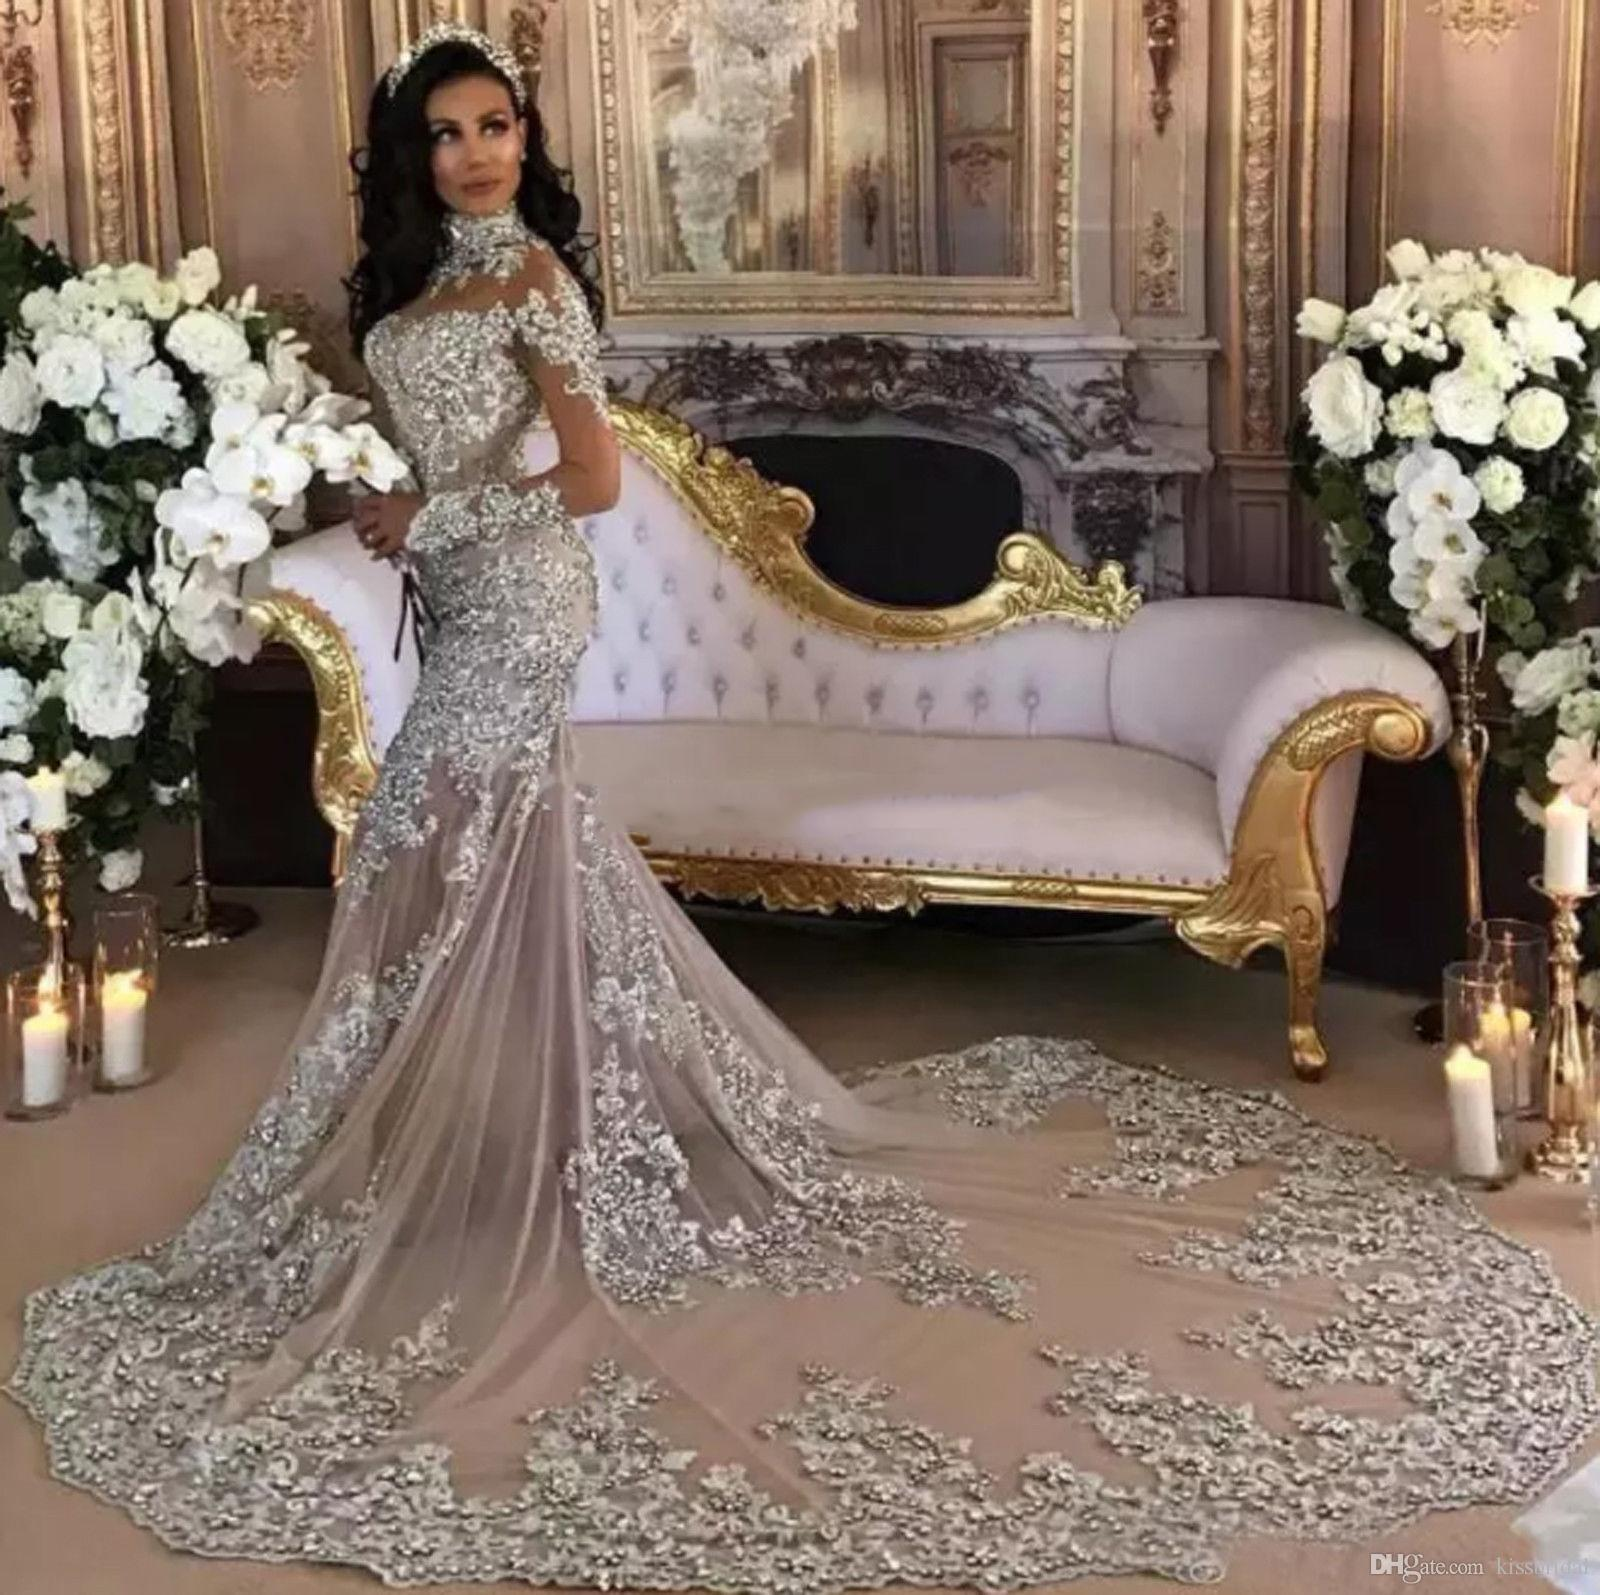 Dubai Arabic Luxury Sparkly 2019 Wedding Dresses Sexy Bling Beaded Lace Applique High Neck Illusion Long Sleeves Mermaid Vintage Bridal Gown